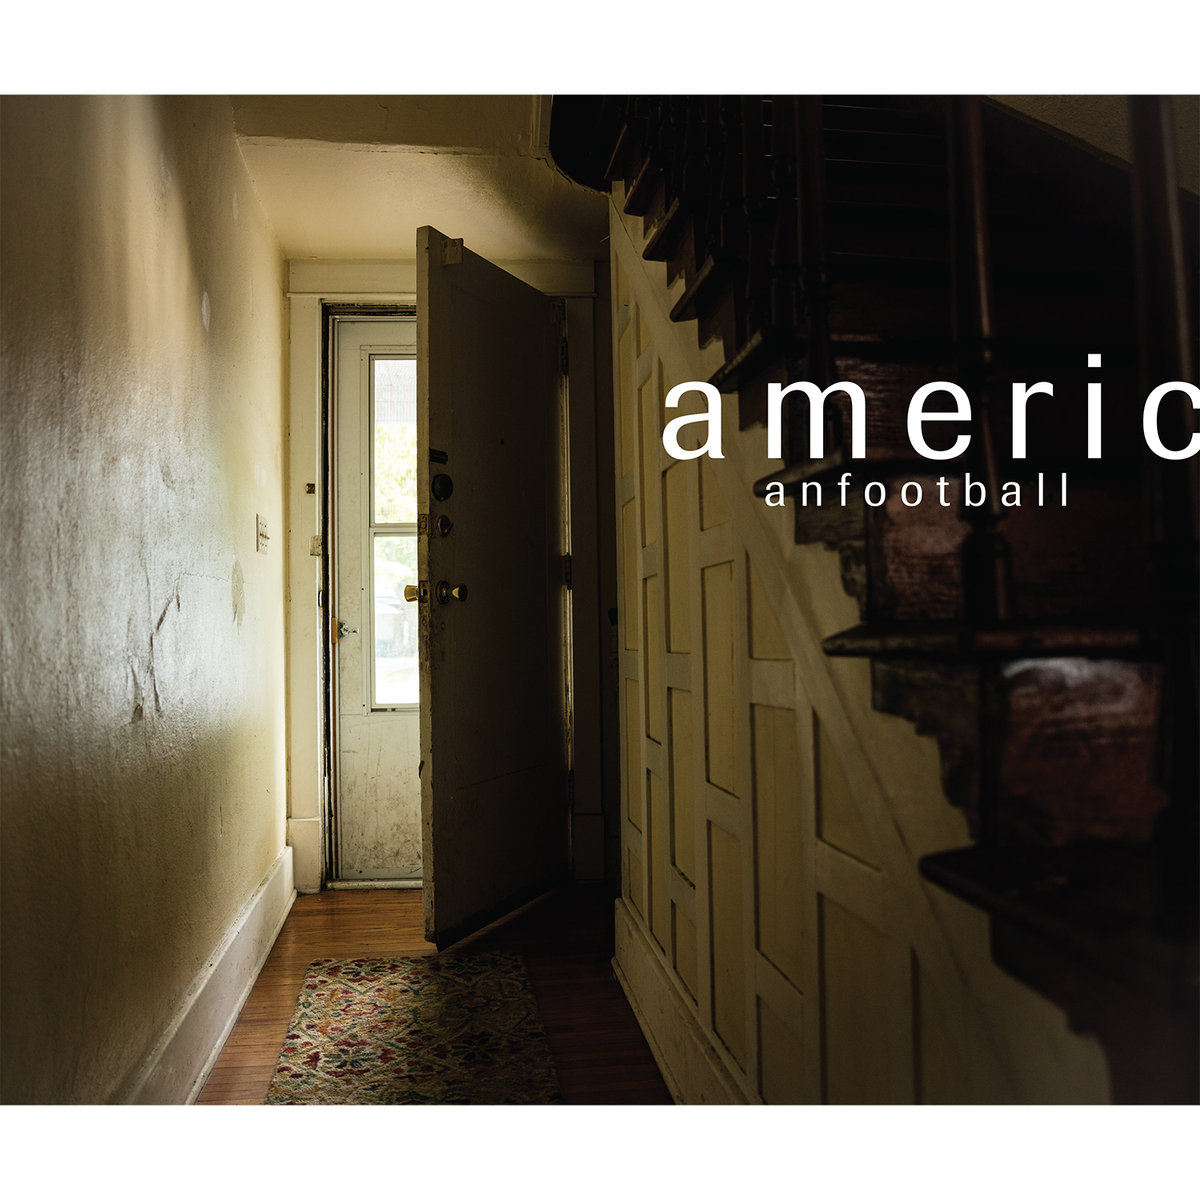 'American Football' by American Football, album review by Gregory Adams.